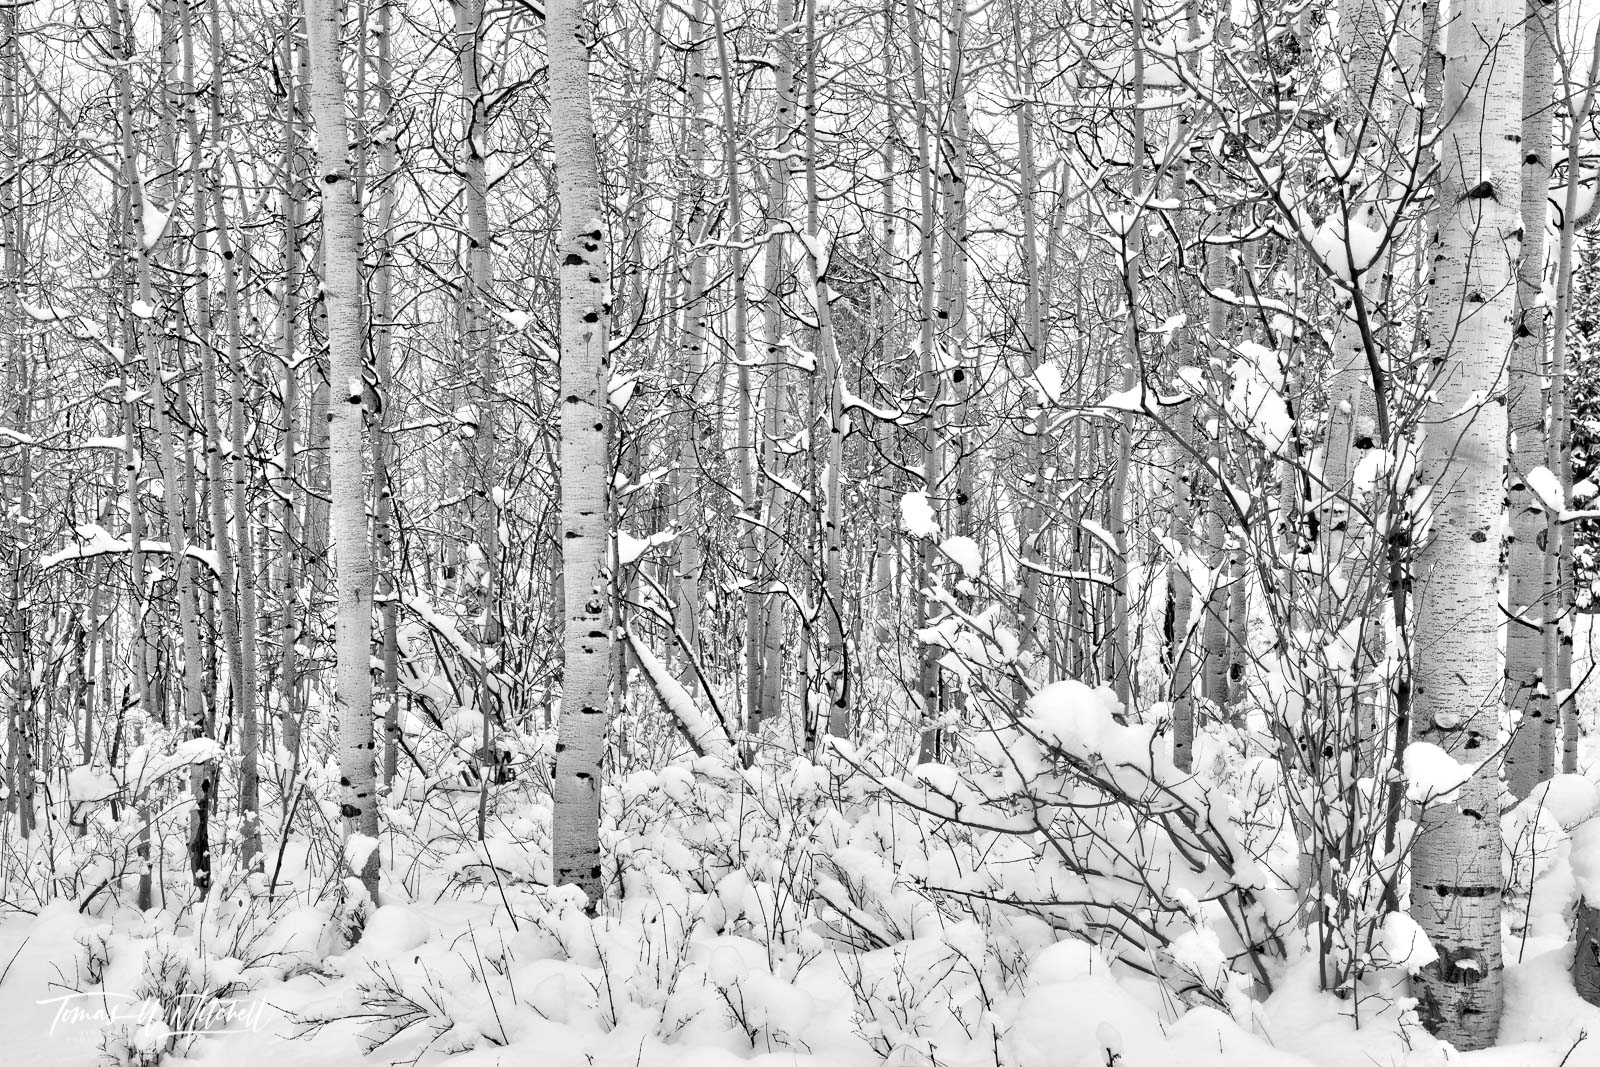 UINTA-WASATCH-CACHE NATIONAL FOREST, UTAH, aspen trees, winter, storms, white, photo